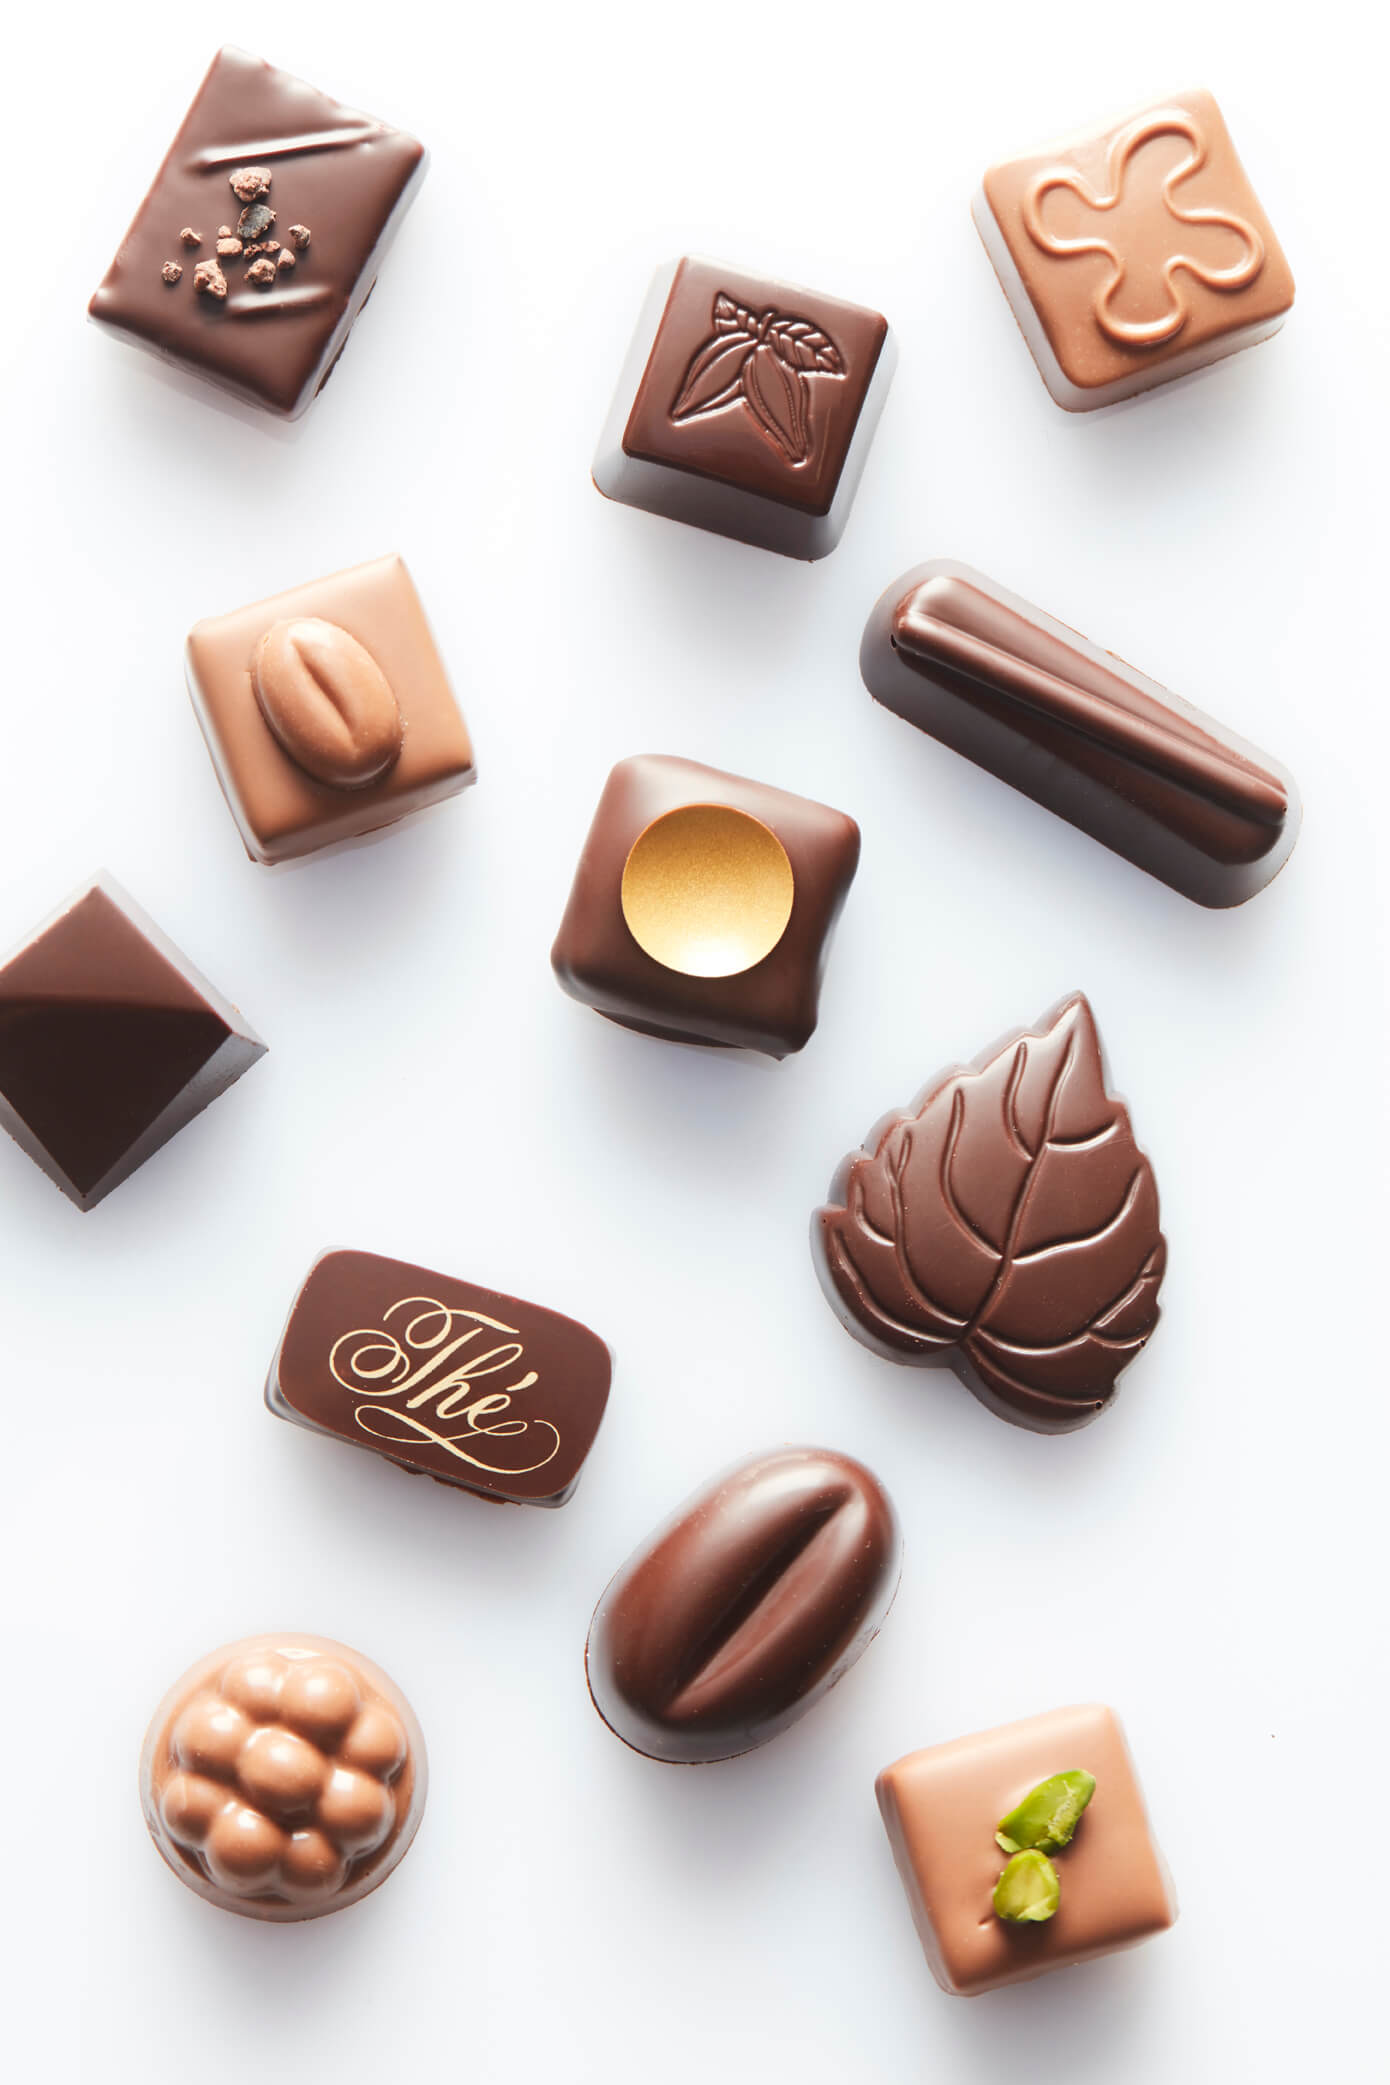 range of pralines